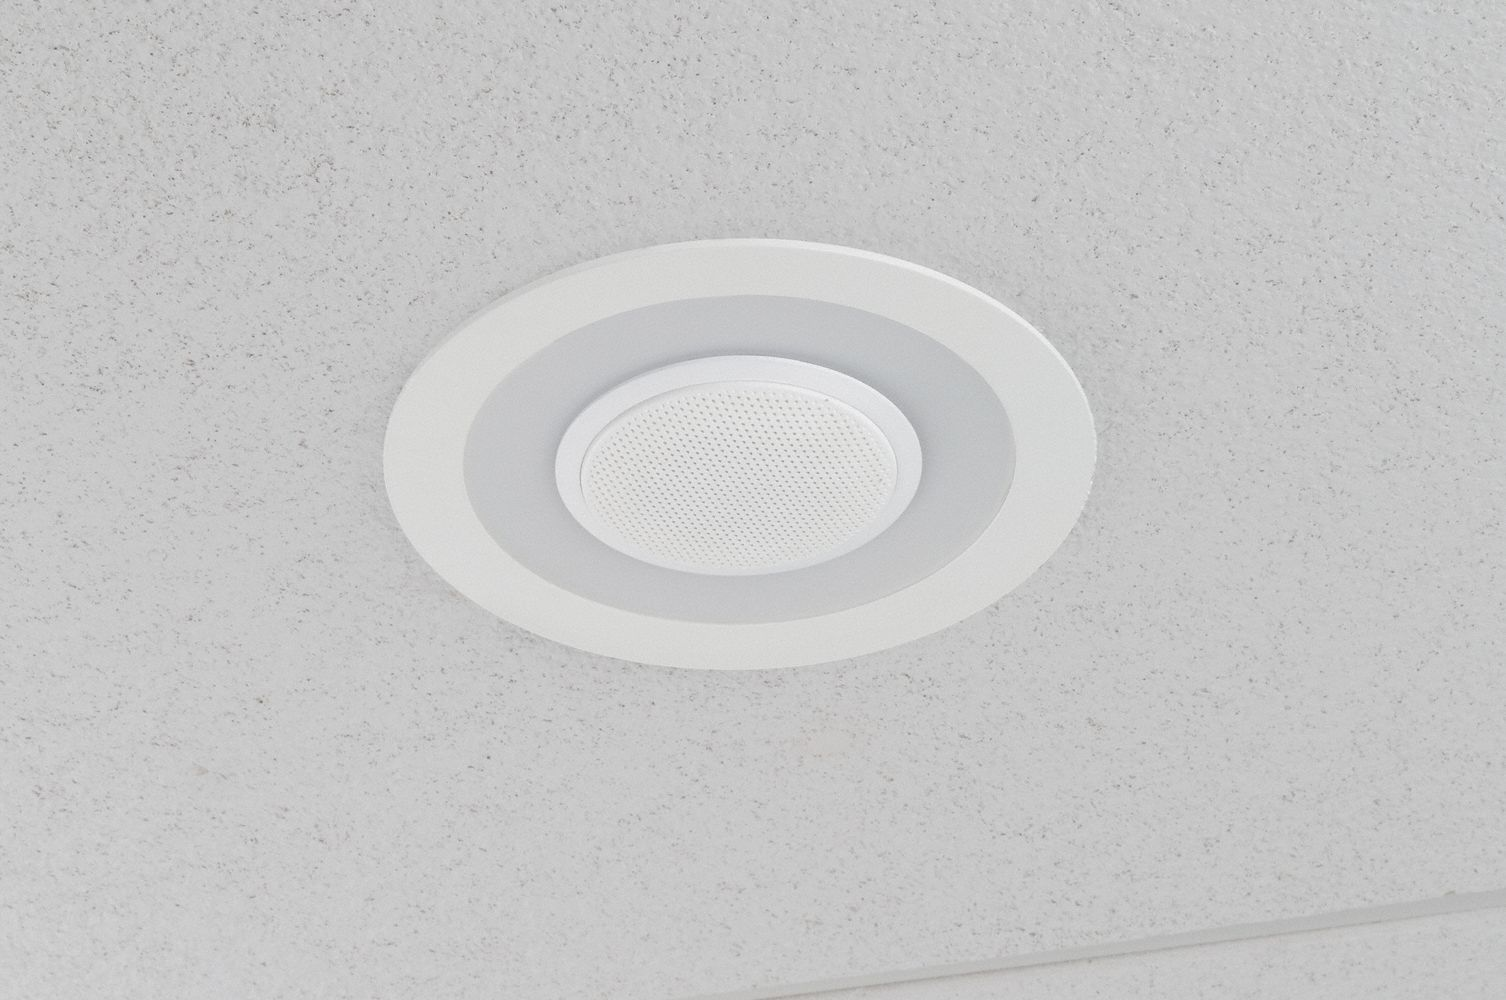 6 in dimmable led recessed speaker downlight lumens 730 voltage 120 watts 11 w